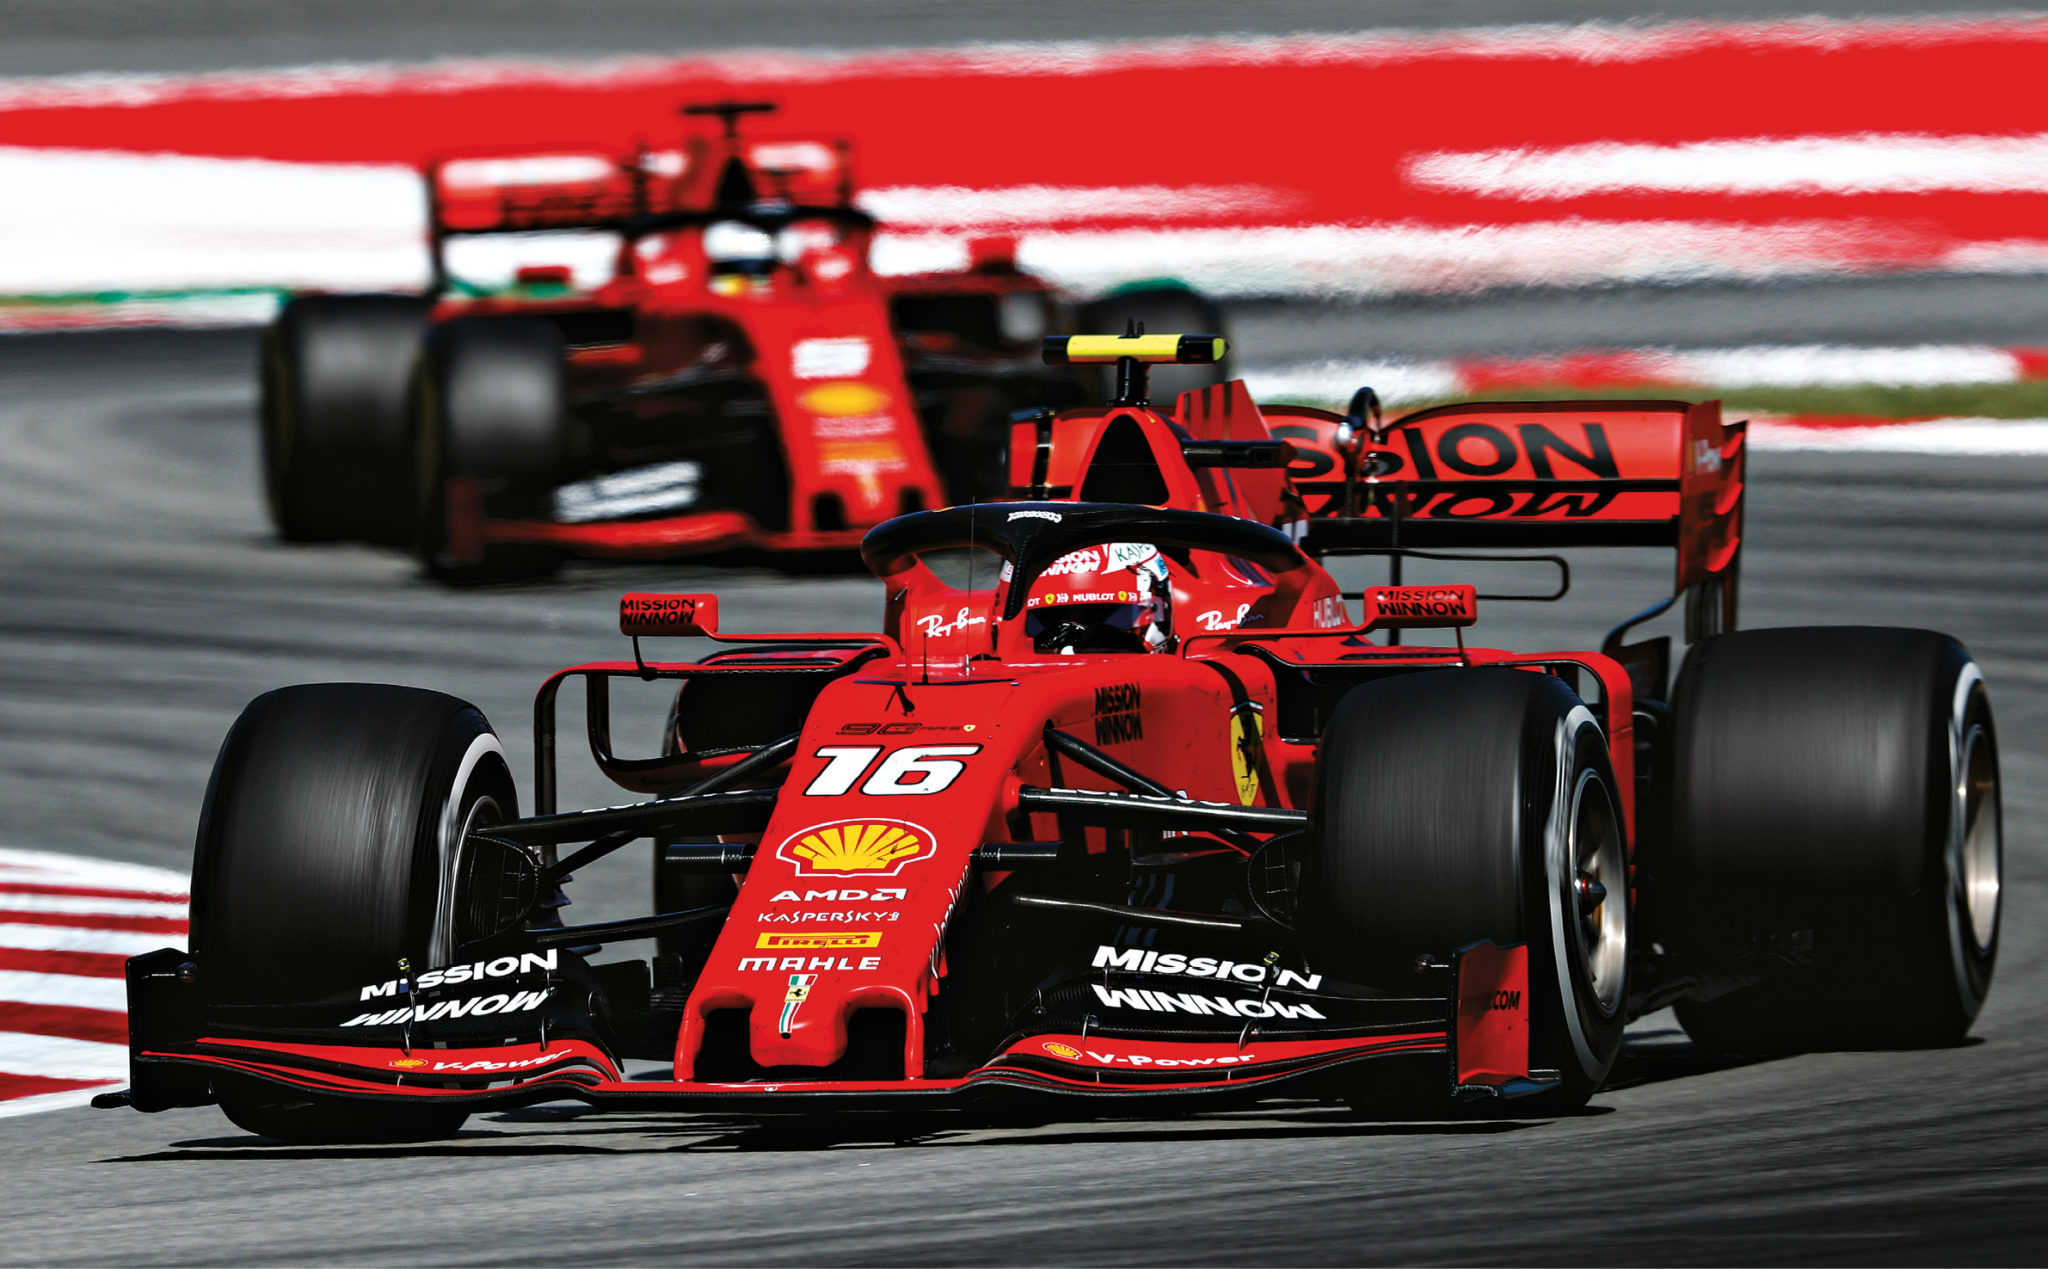 The pain in Spain: Leclerc leads Vettel, but Ferrari never came close to challenging Mercedes